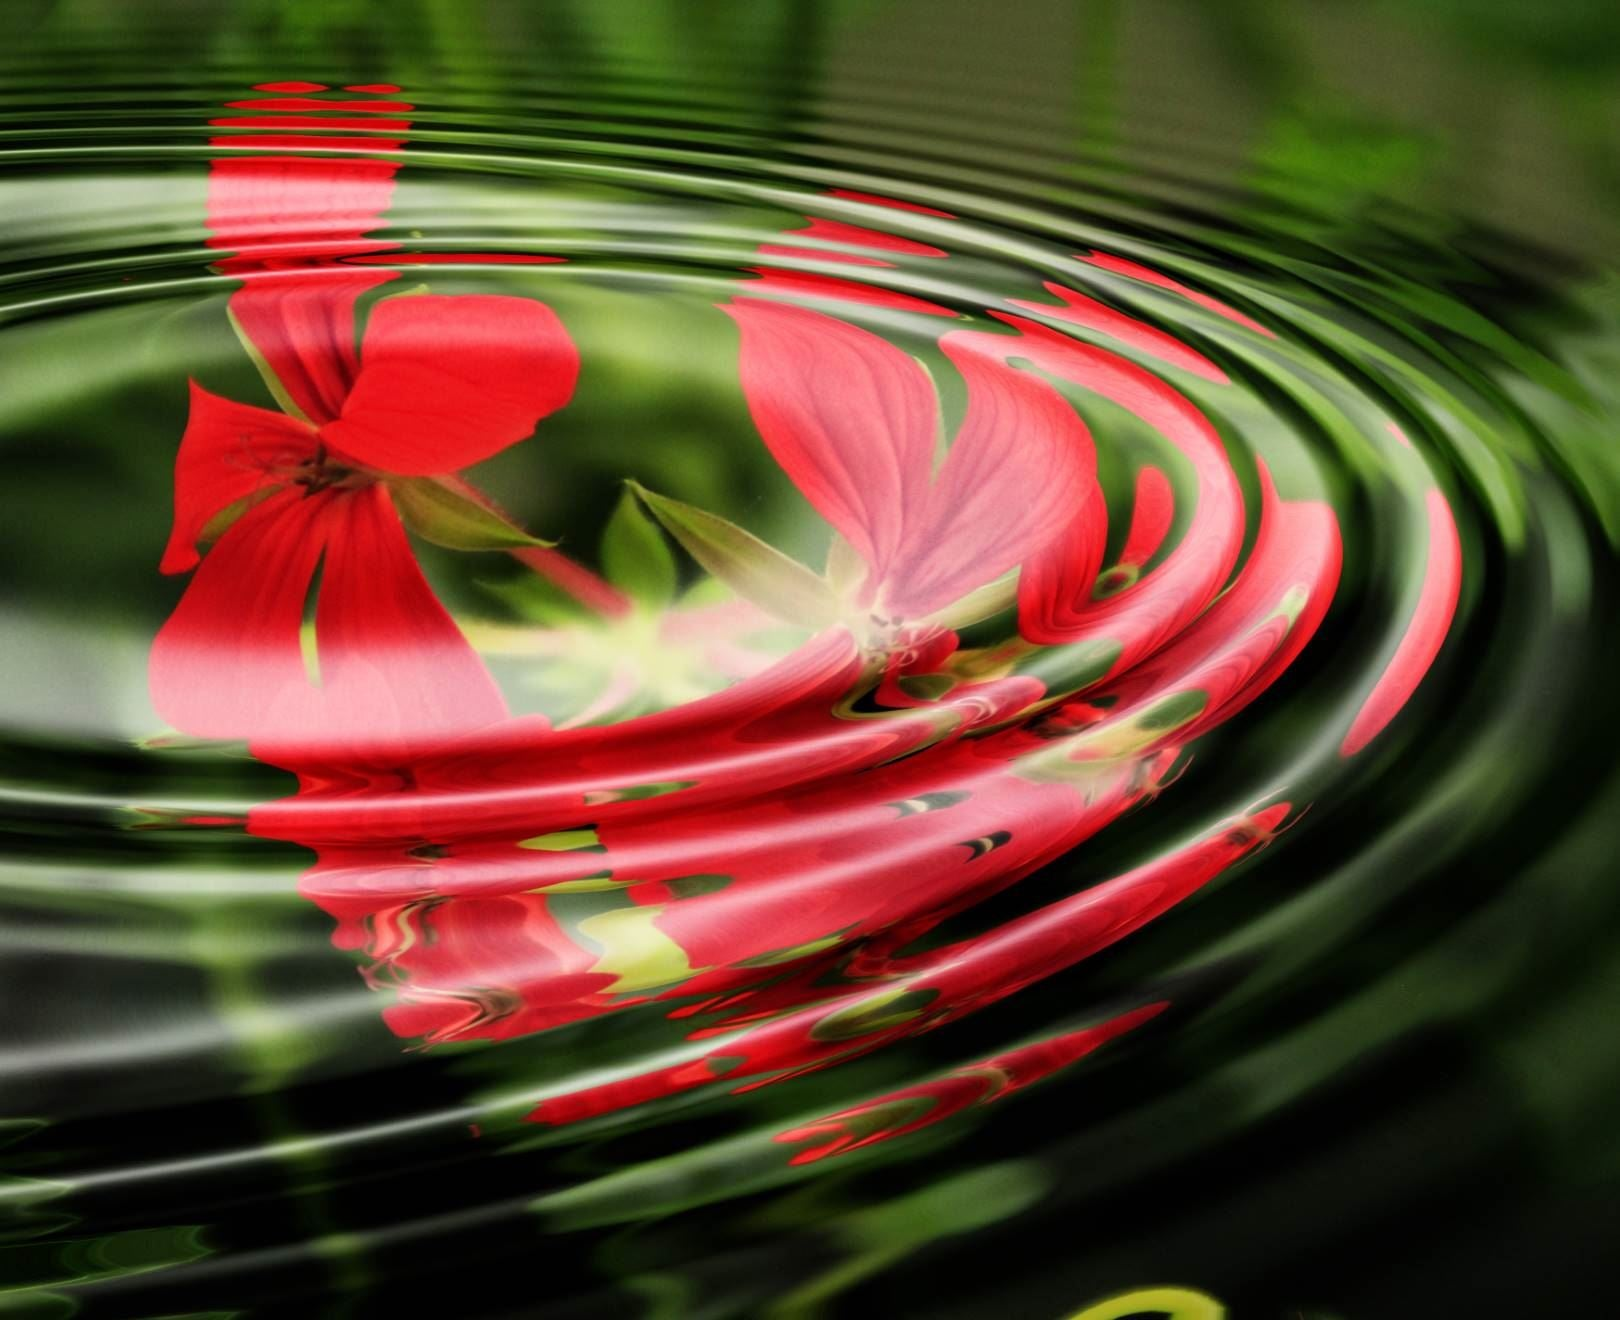 Red Flower In Ripples